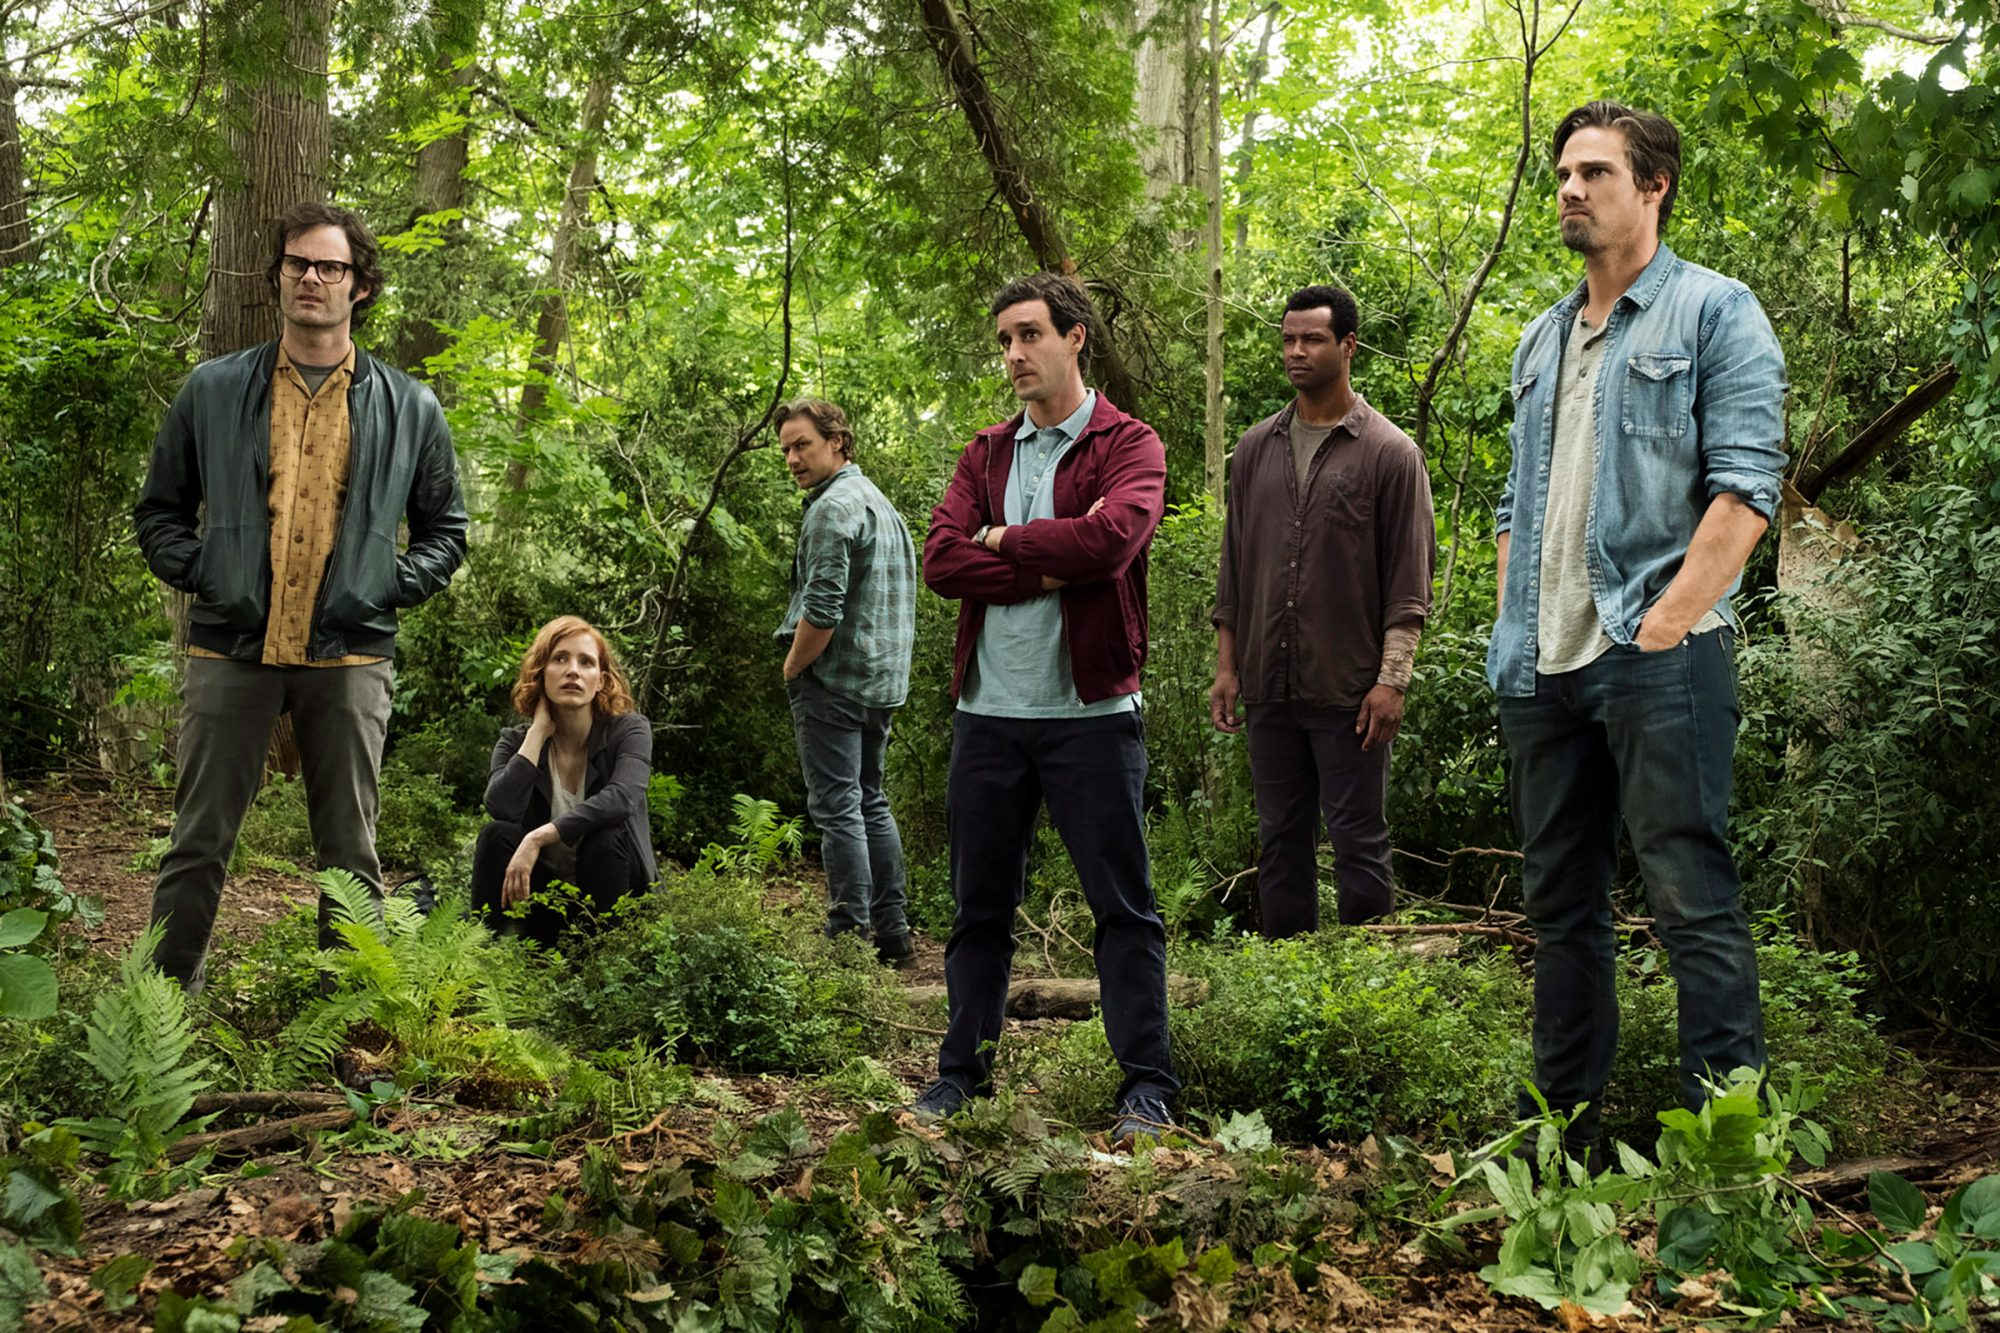 "(L-r) BILL HADER as Richie Tozier, JESSICA CHASTAIN as Beverly Marsh, JAMES MCAVOY as Bill Denbrough, JAMES RANSONE as Eddie Kaspbrak, ISAIAH MUSTAFA as Mike Hanlon, and JAY RYAN as Ben Hascomb in New Line Cinema's horror thriller ""IT CHAPTER TWO,"" a Warner Bros. Pictures release. Photo by Brooke Palmer"